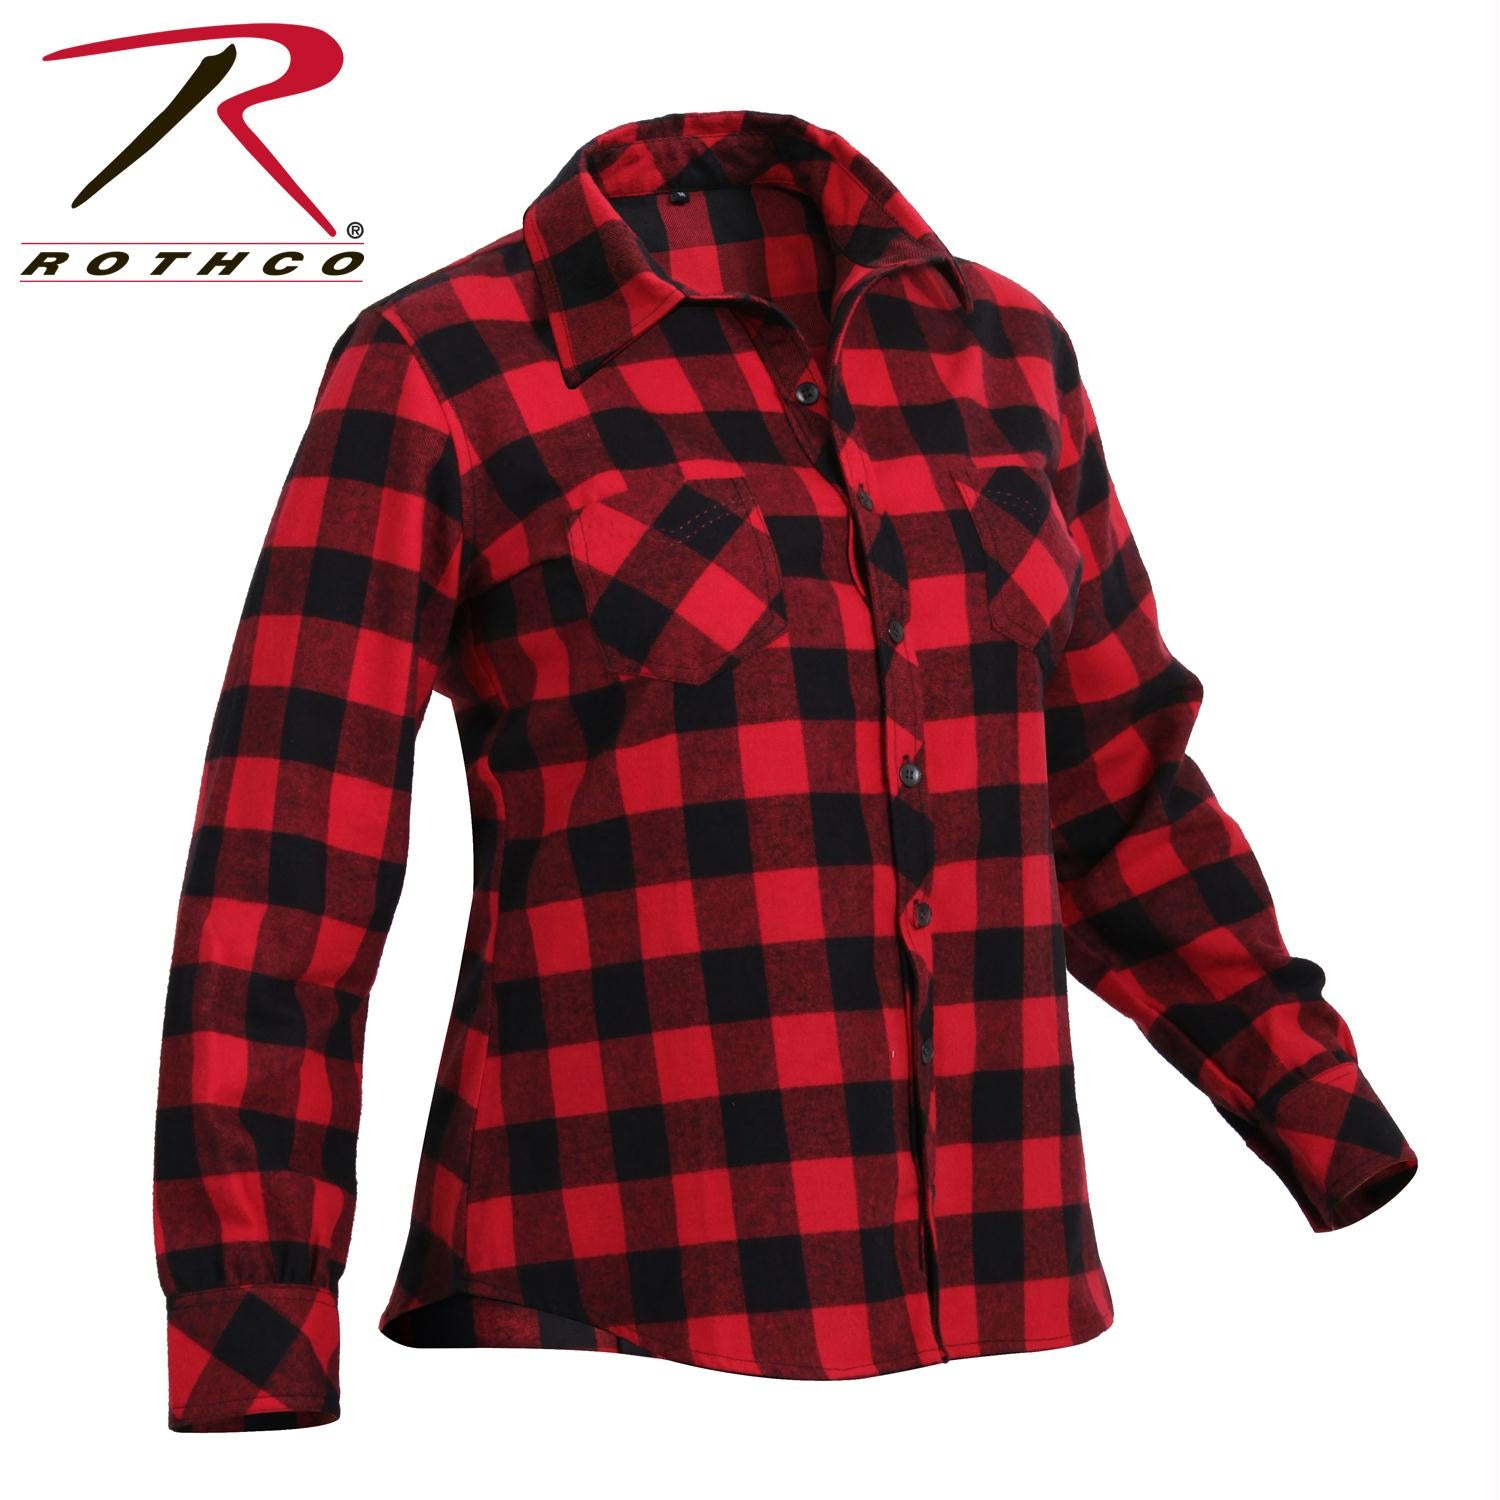 Rothco Womens Plaid Flannel Shirt - Red / Black / XL